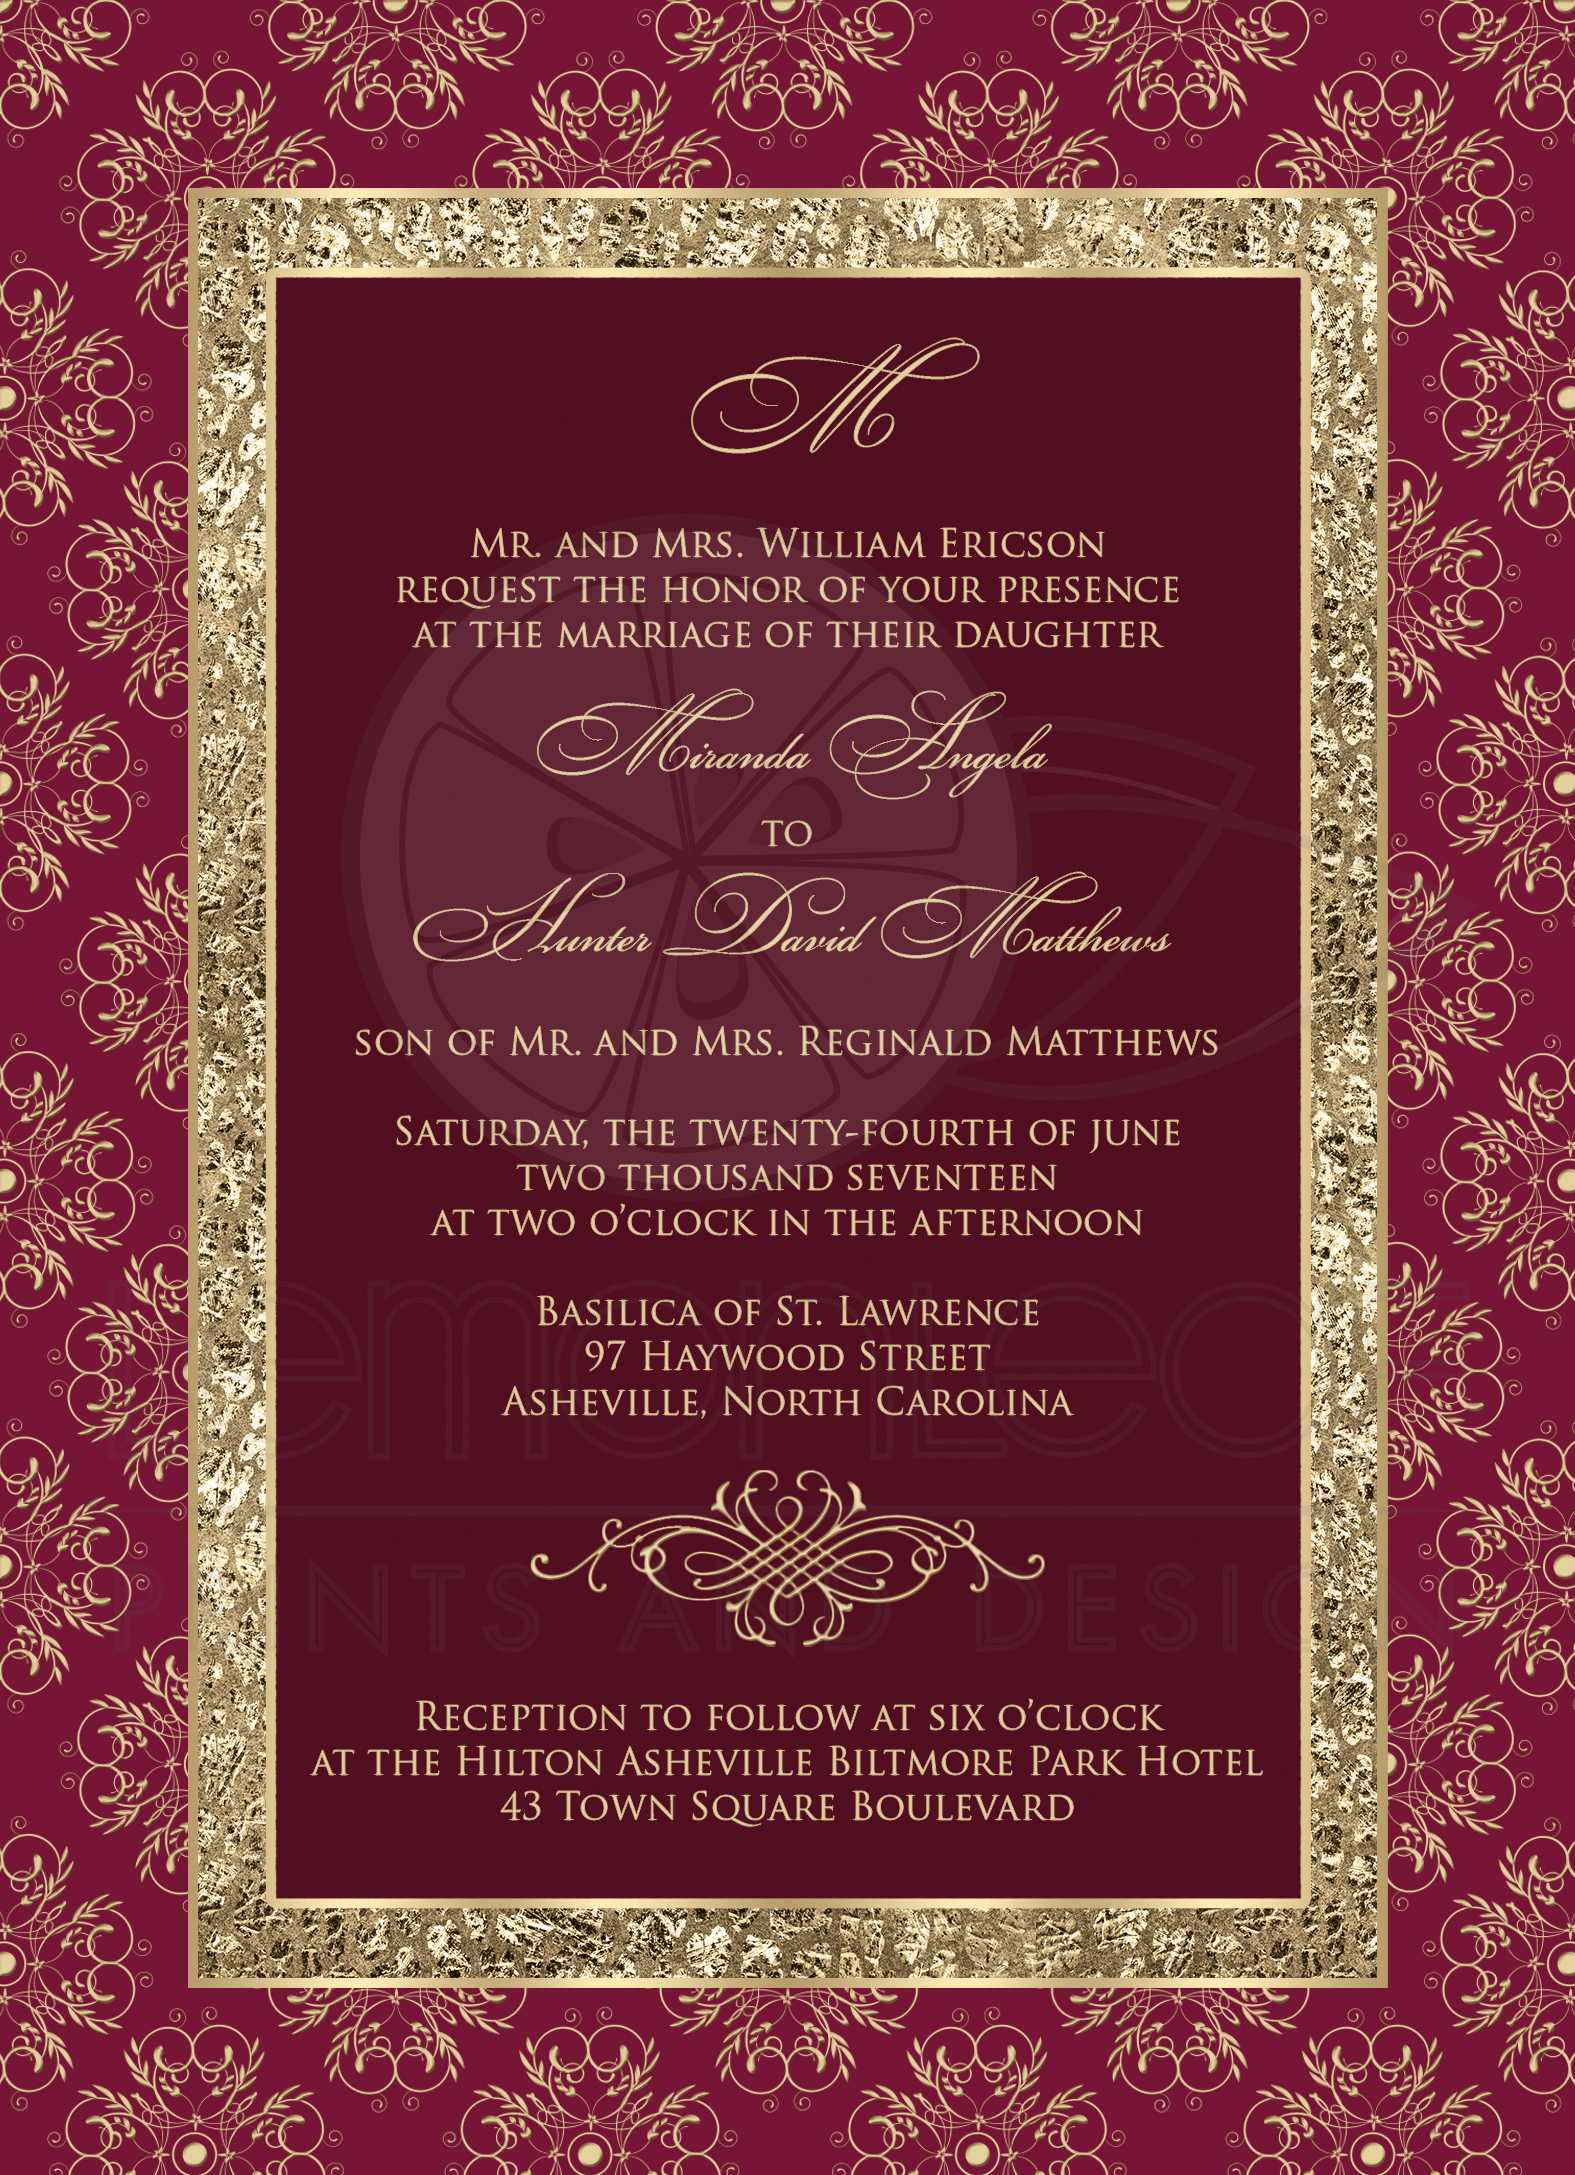 Wedding Invitation | Burgundy, Gold Elegance | Monogram